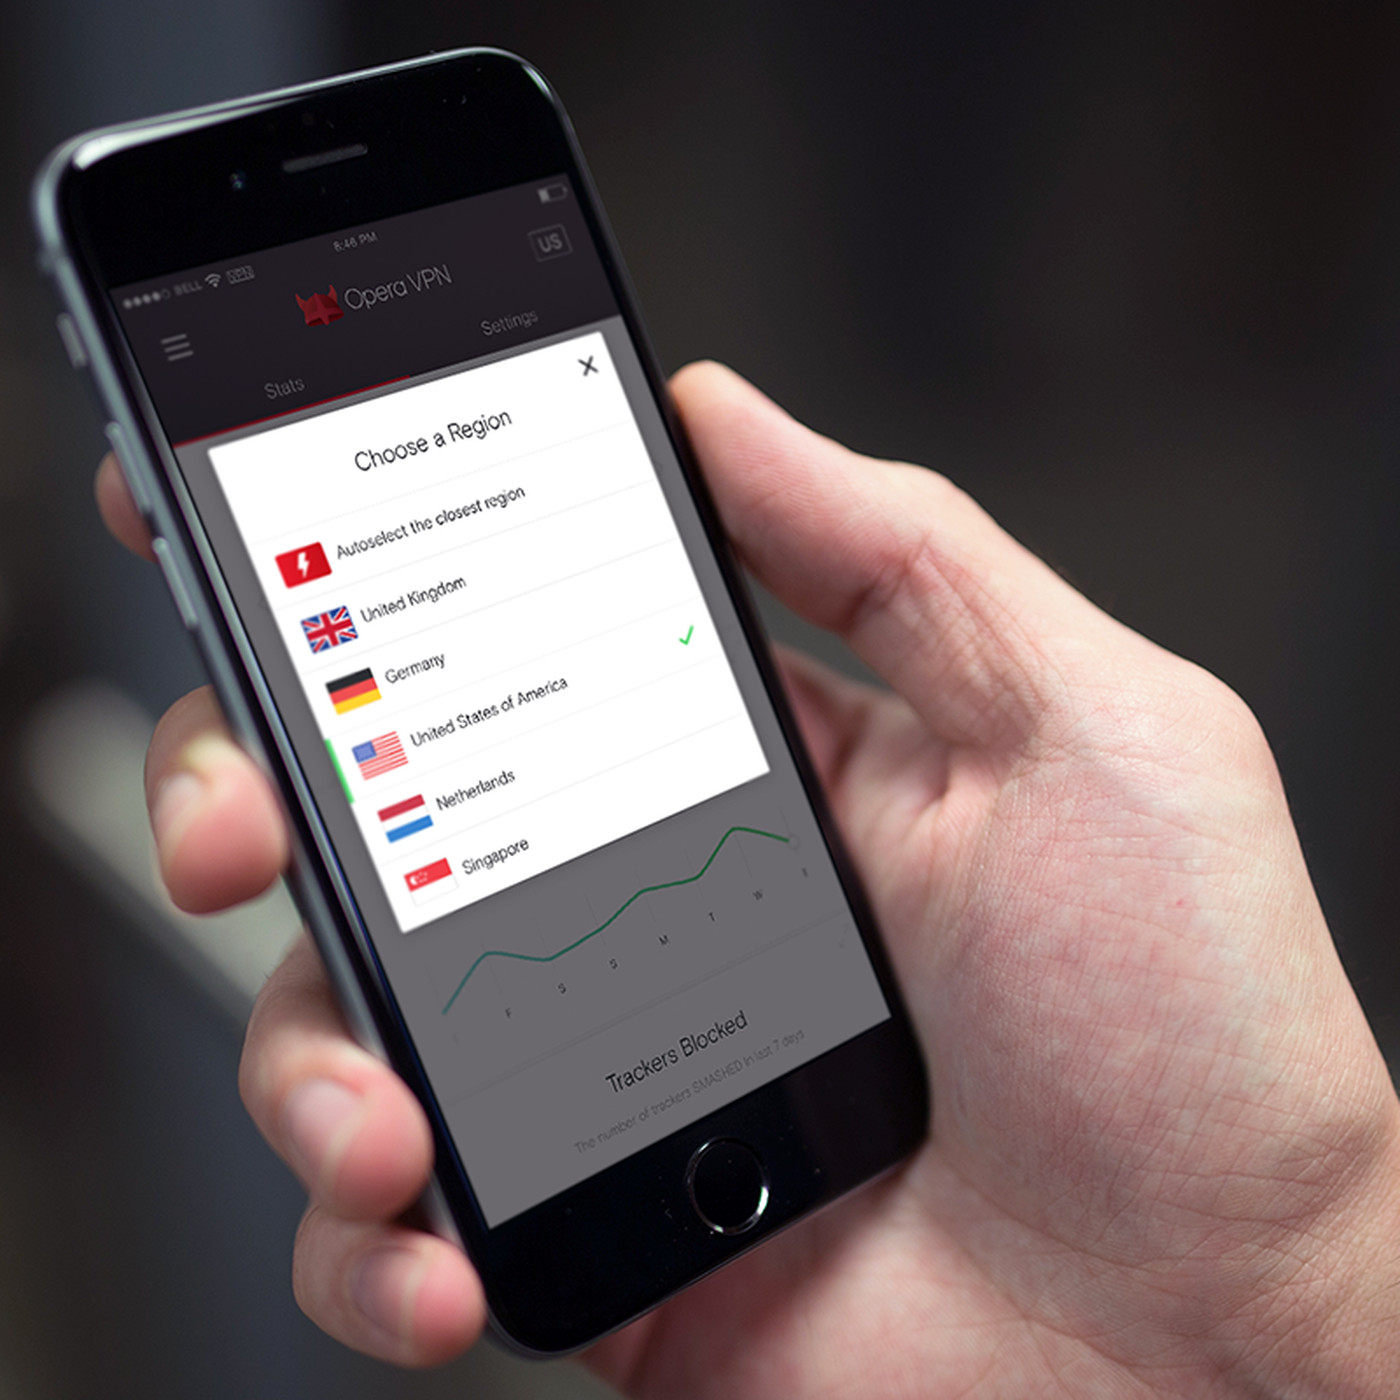 Opera launches 'free and unlimited' VPN app for iOS - The Verge